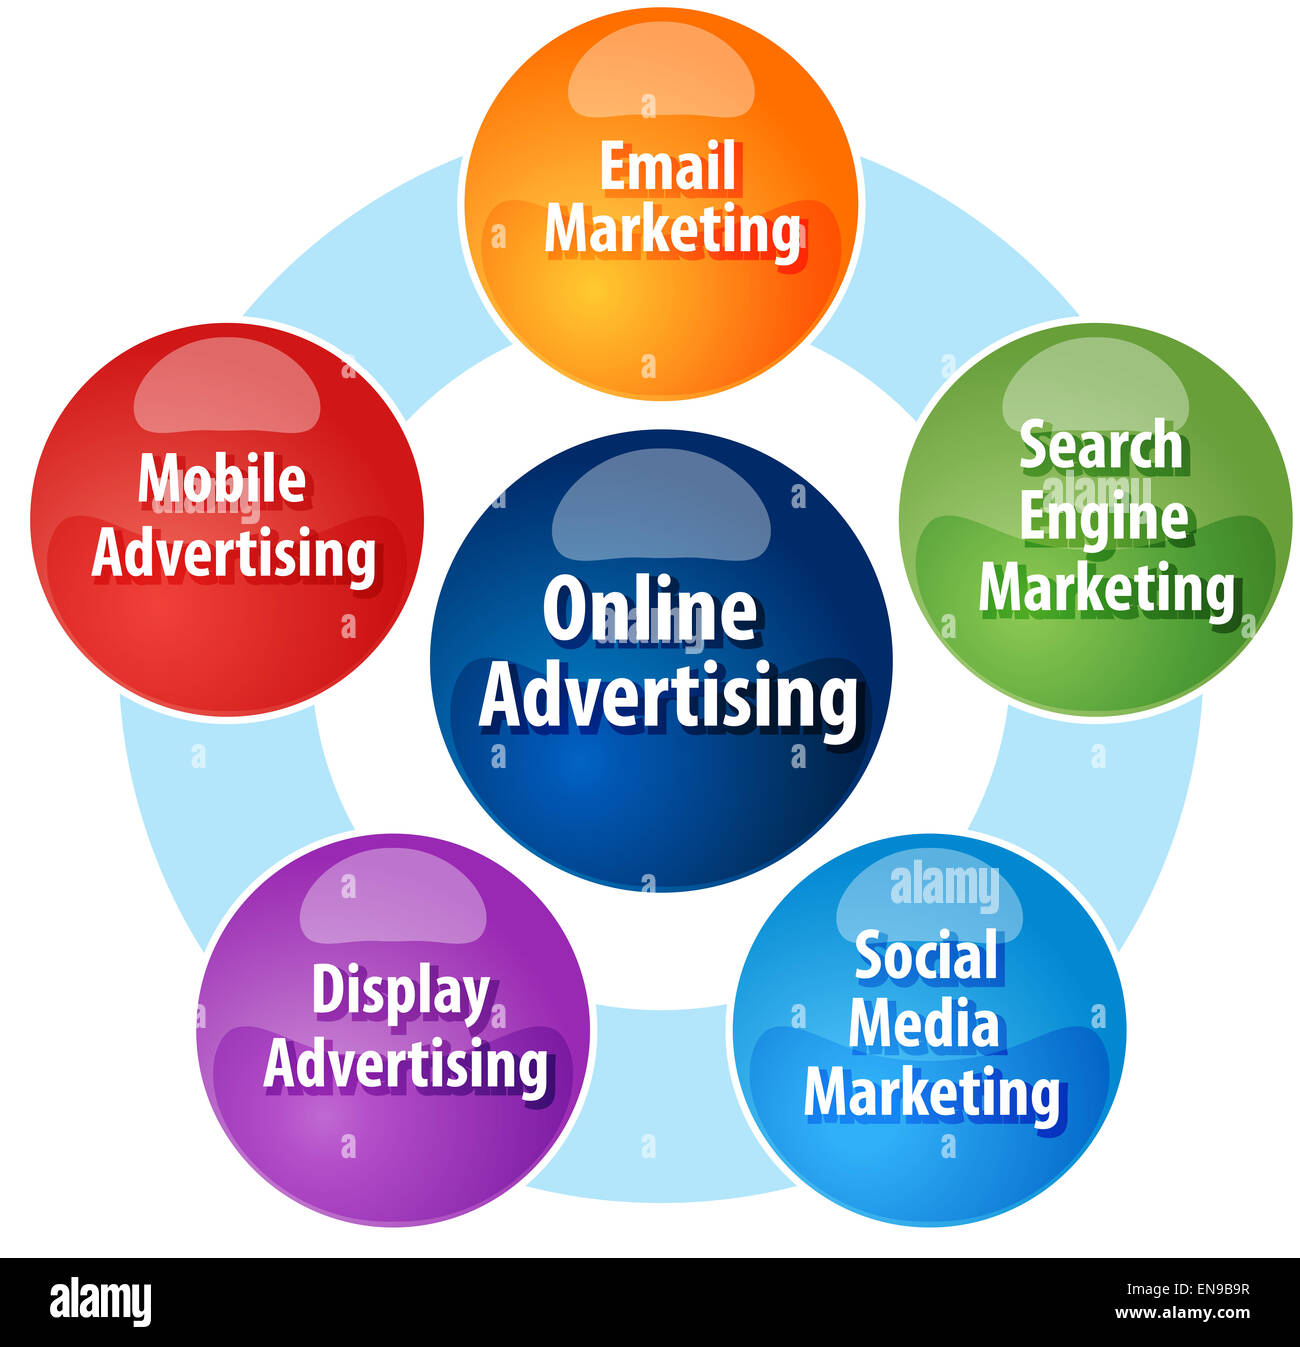 Business strategy concept infographic diagram illustration of types business strategy concept infographic diagram illustration of types of online advertising ccuart Images